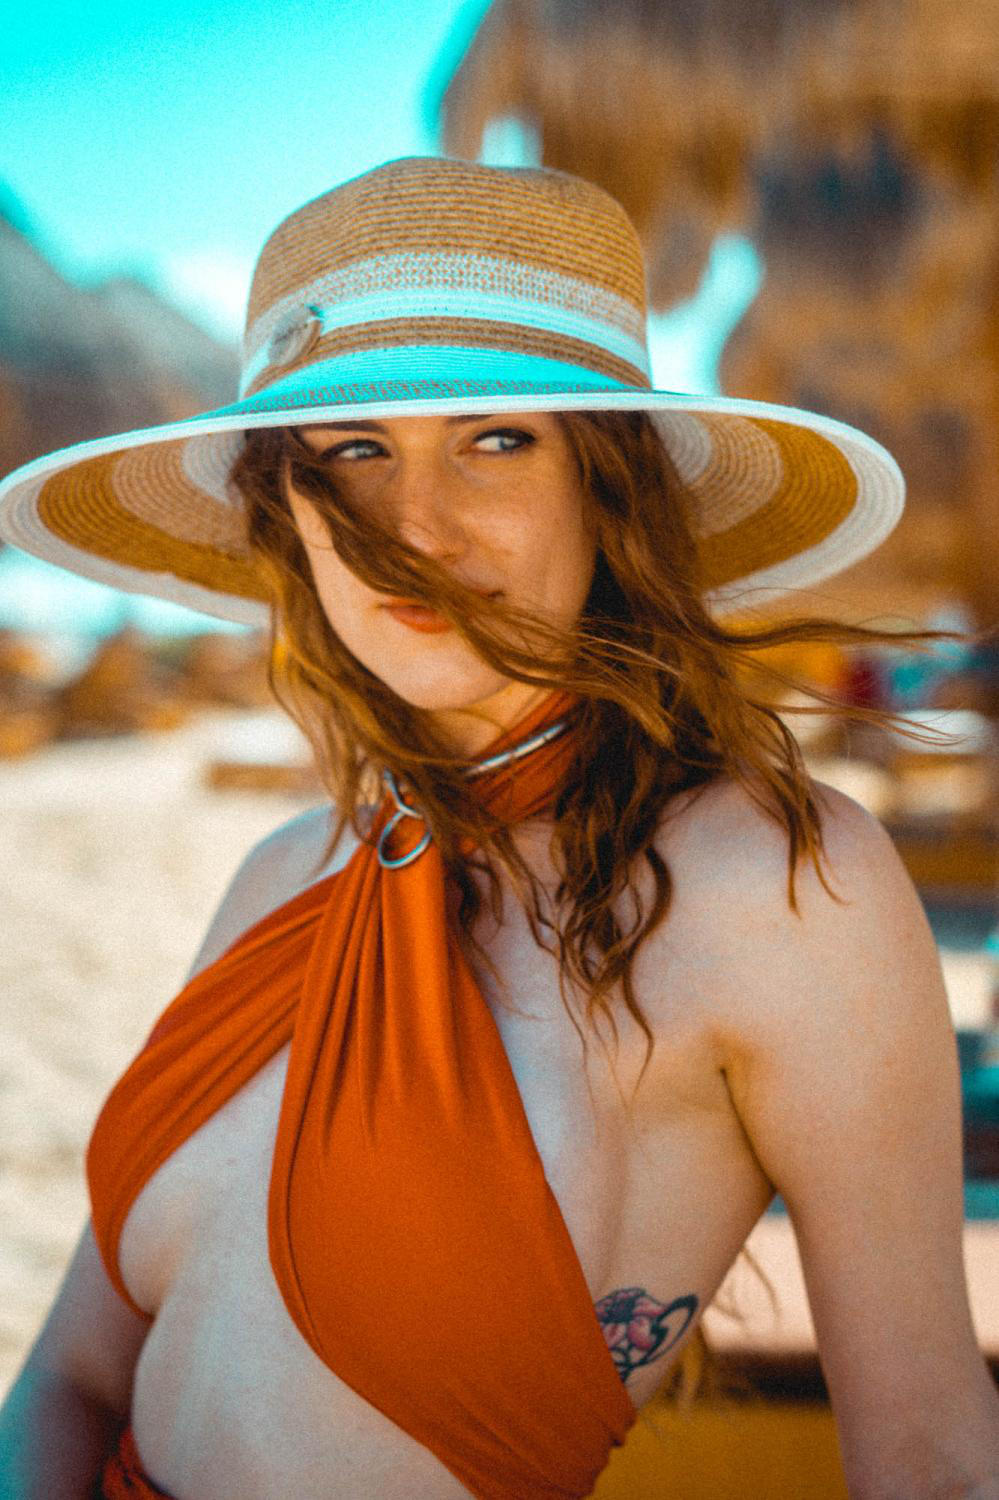 Windy at the beach! by piperblush